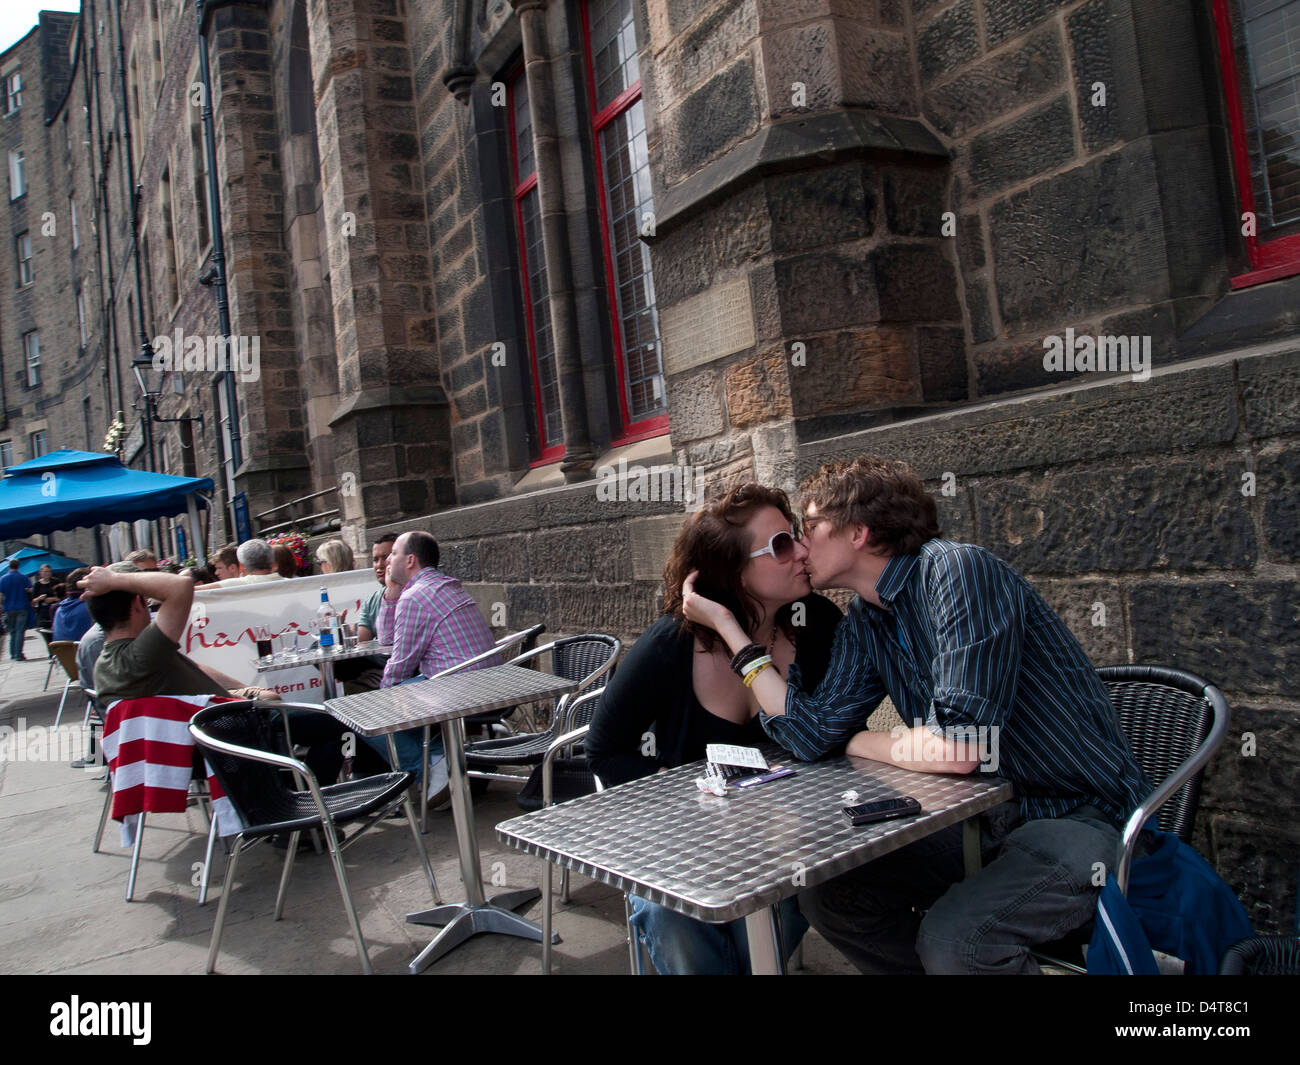 young lovers kissing at outdoor cafe - Stock Image